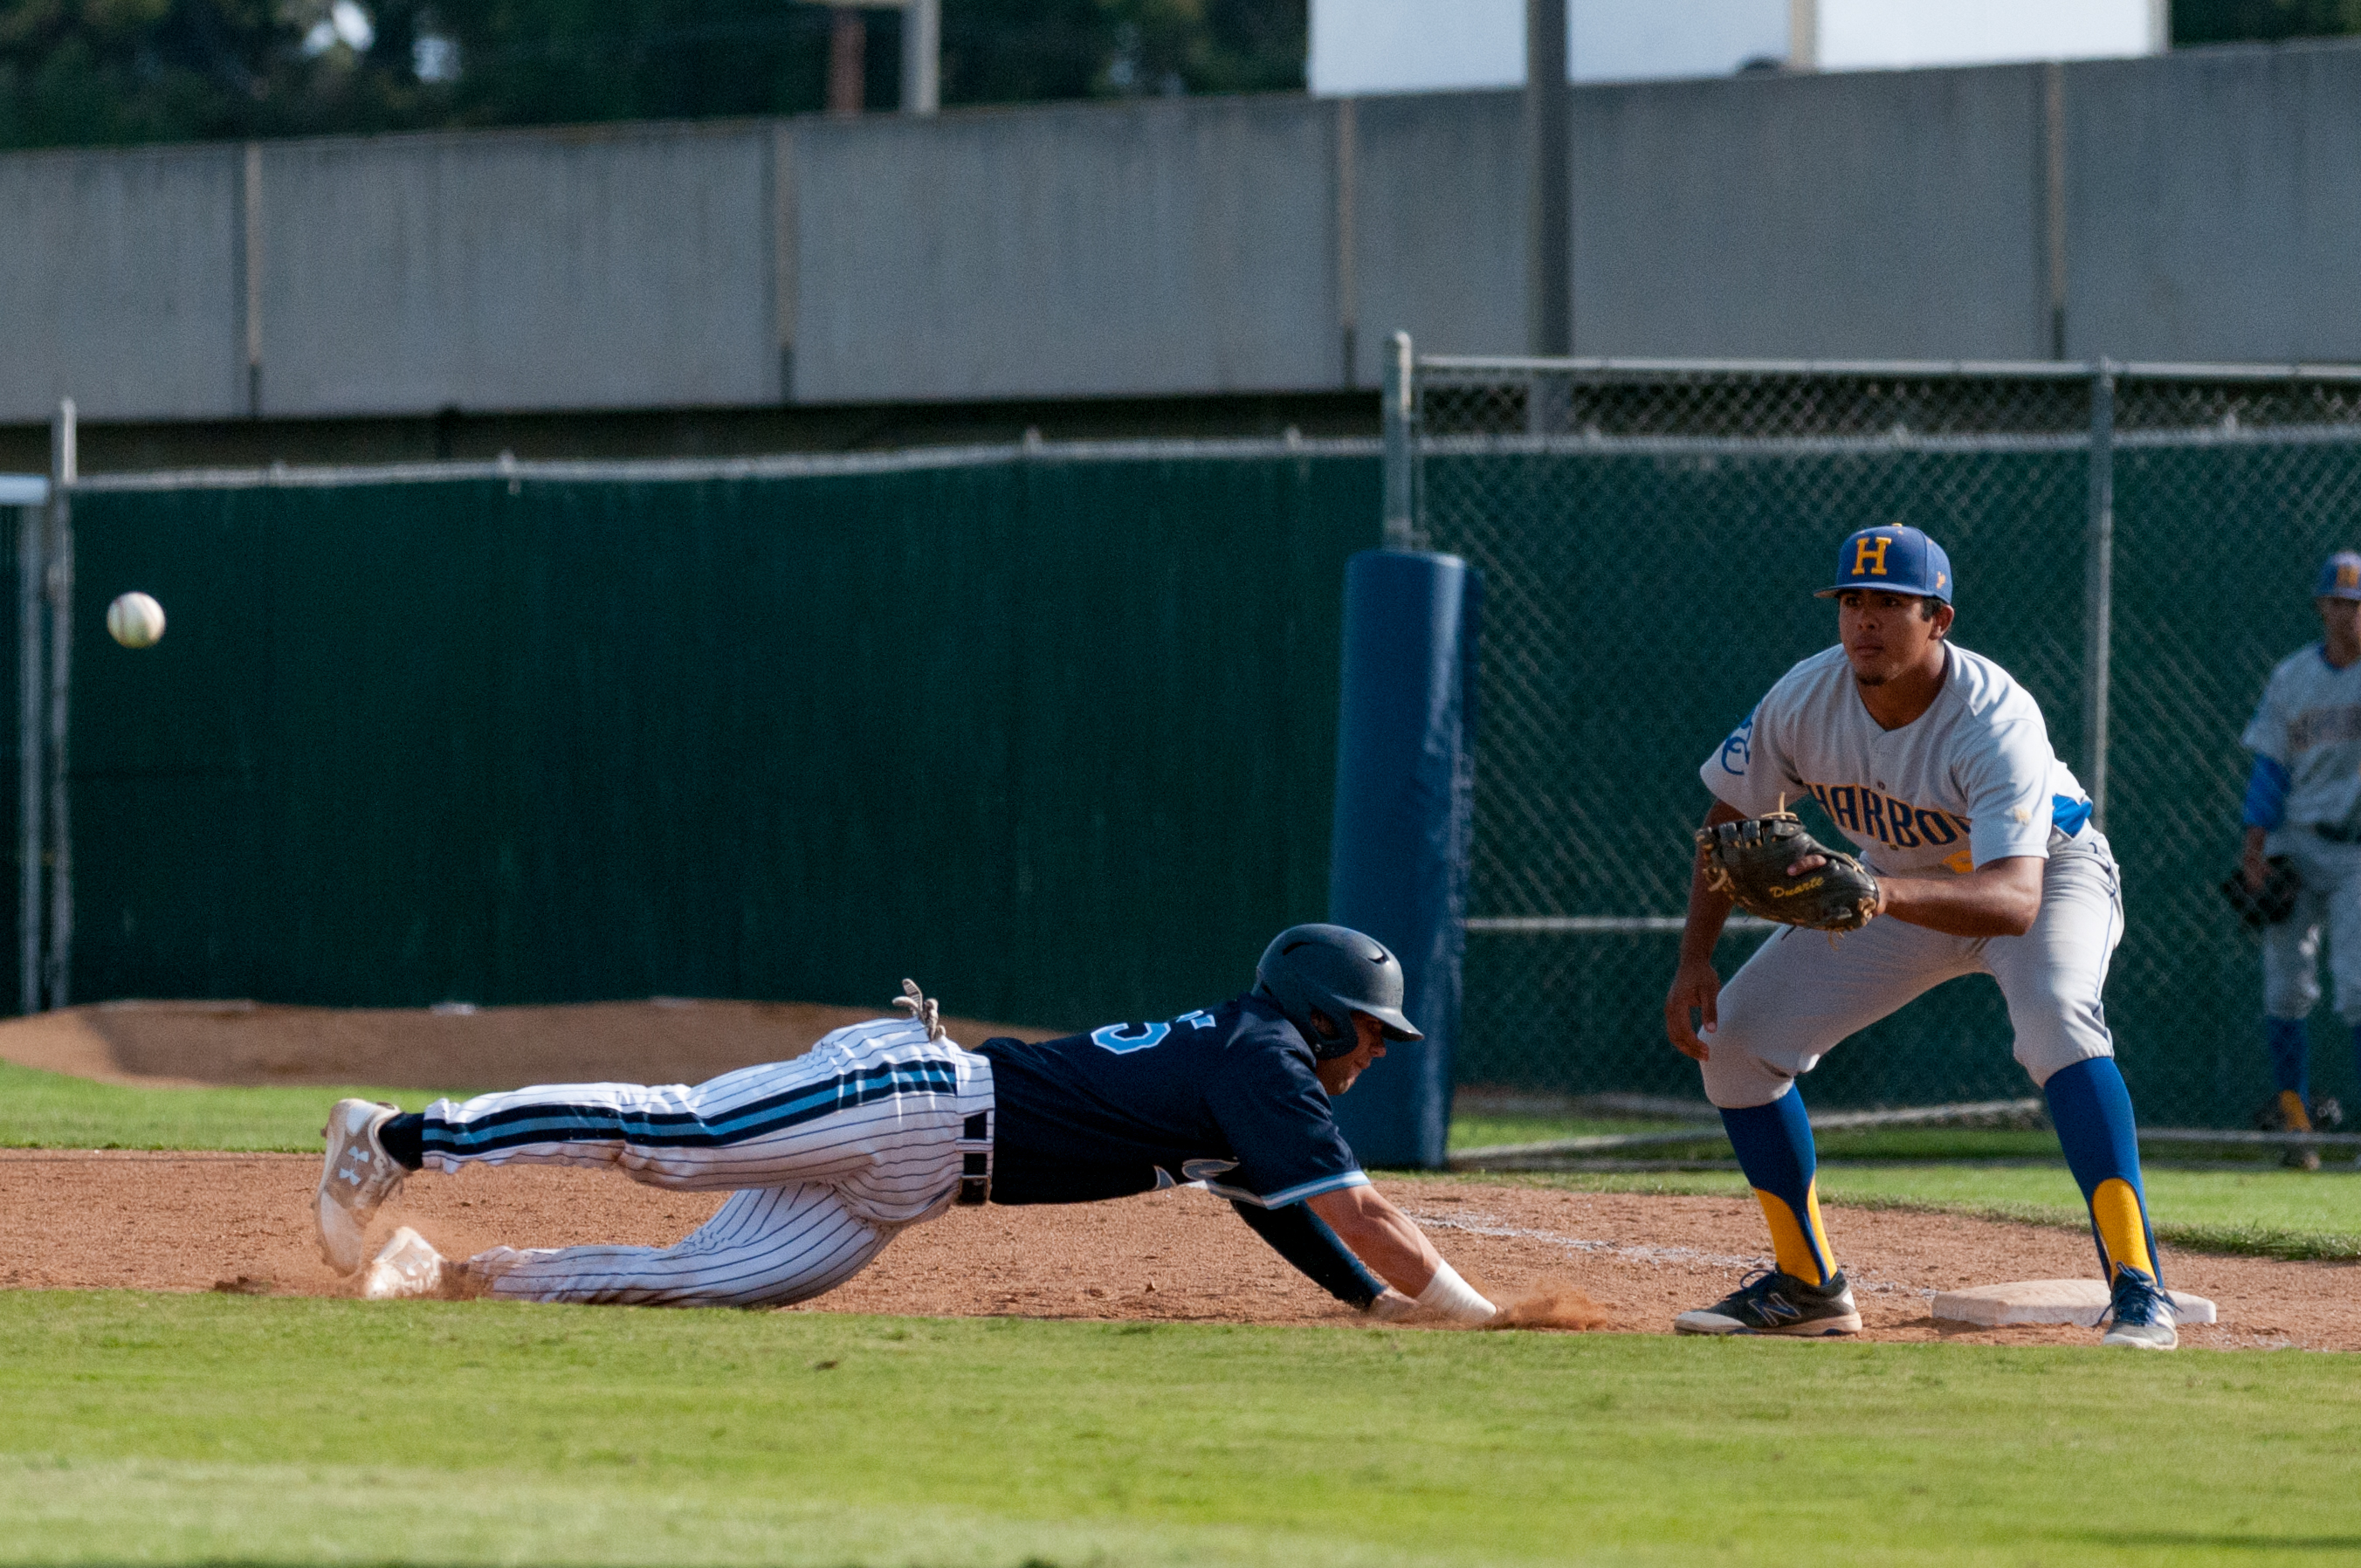 Sophomore catcher Trevor Casanova slides back into first base during El Camino's game against L.A. Harbor College on Tuesday, April 4 at Warrior Field. Photo credit: Osvaldo Deras